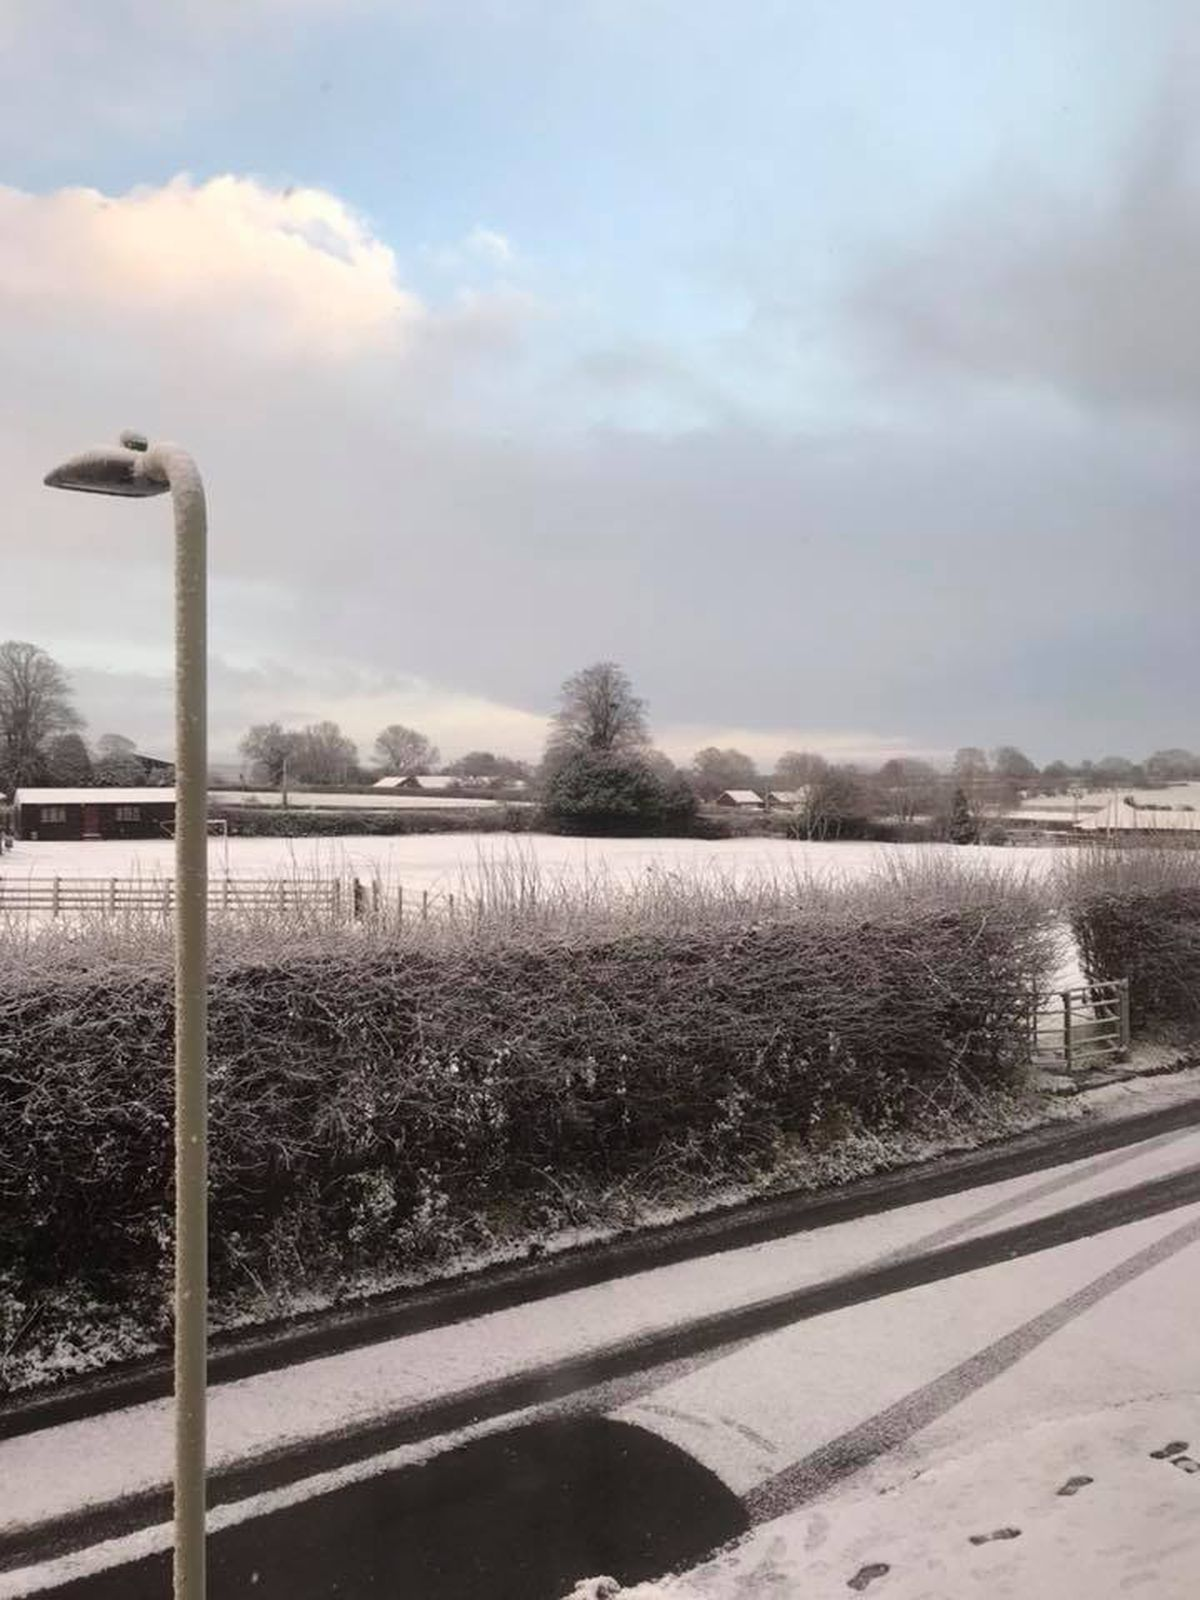 Michelle Higginson sent us this picture from Cheswardine